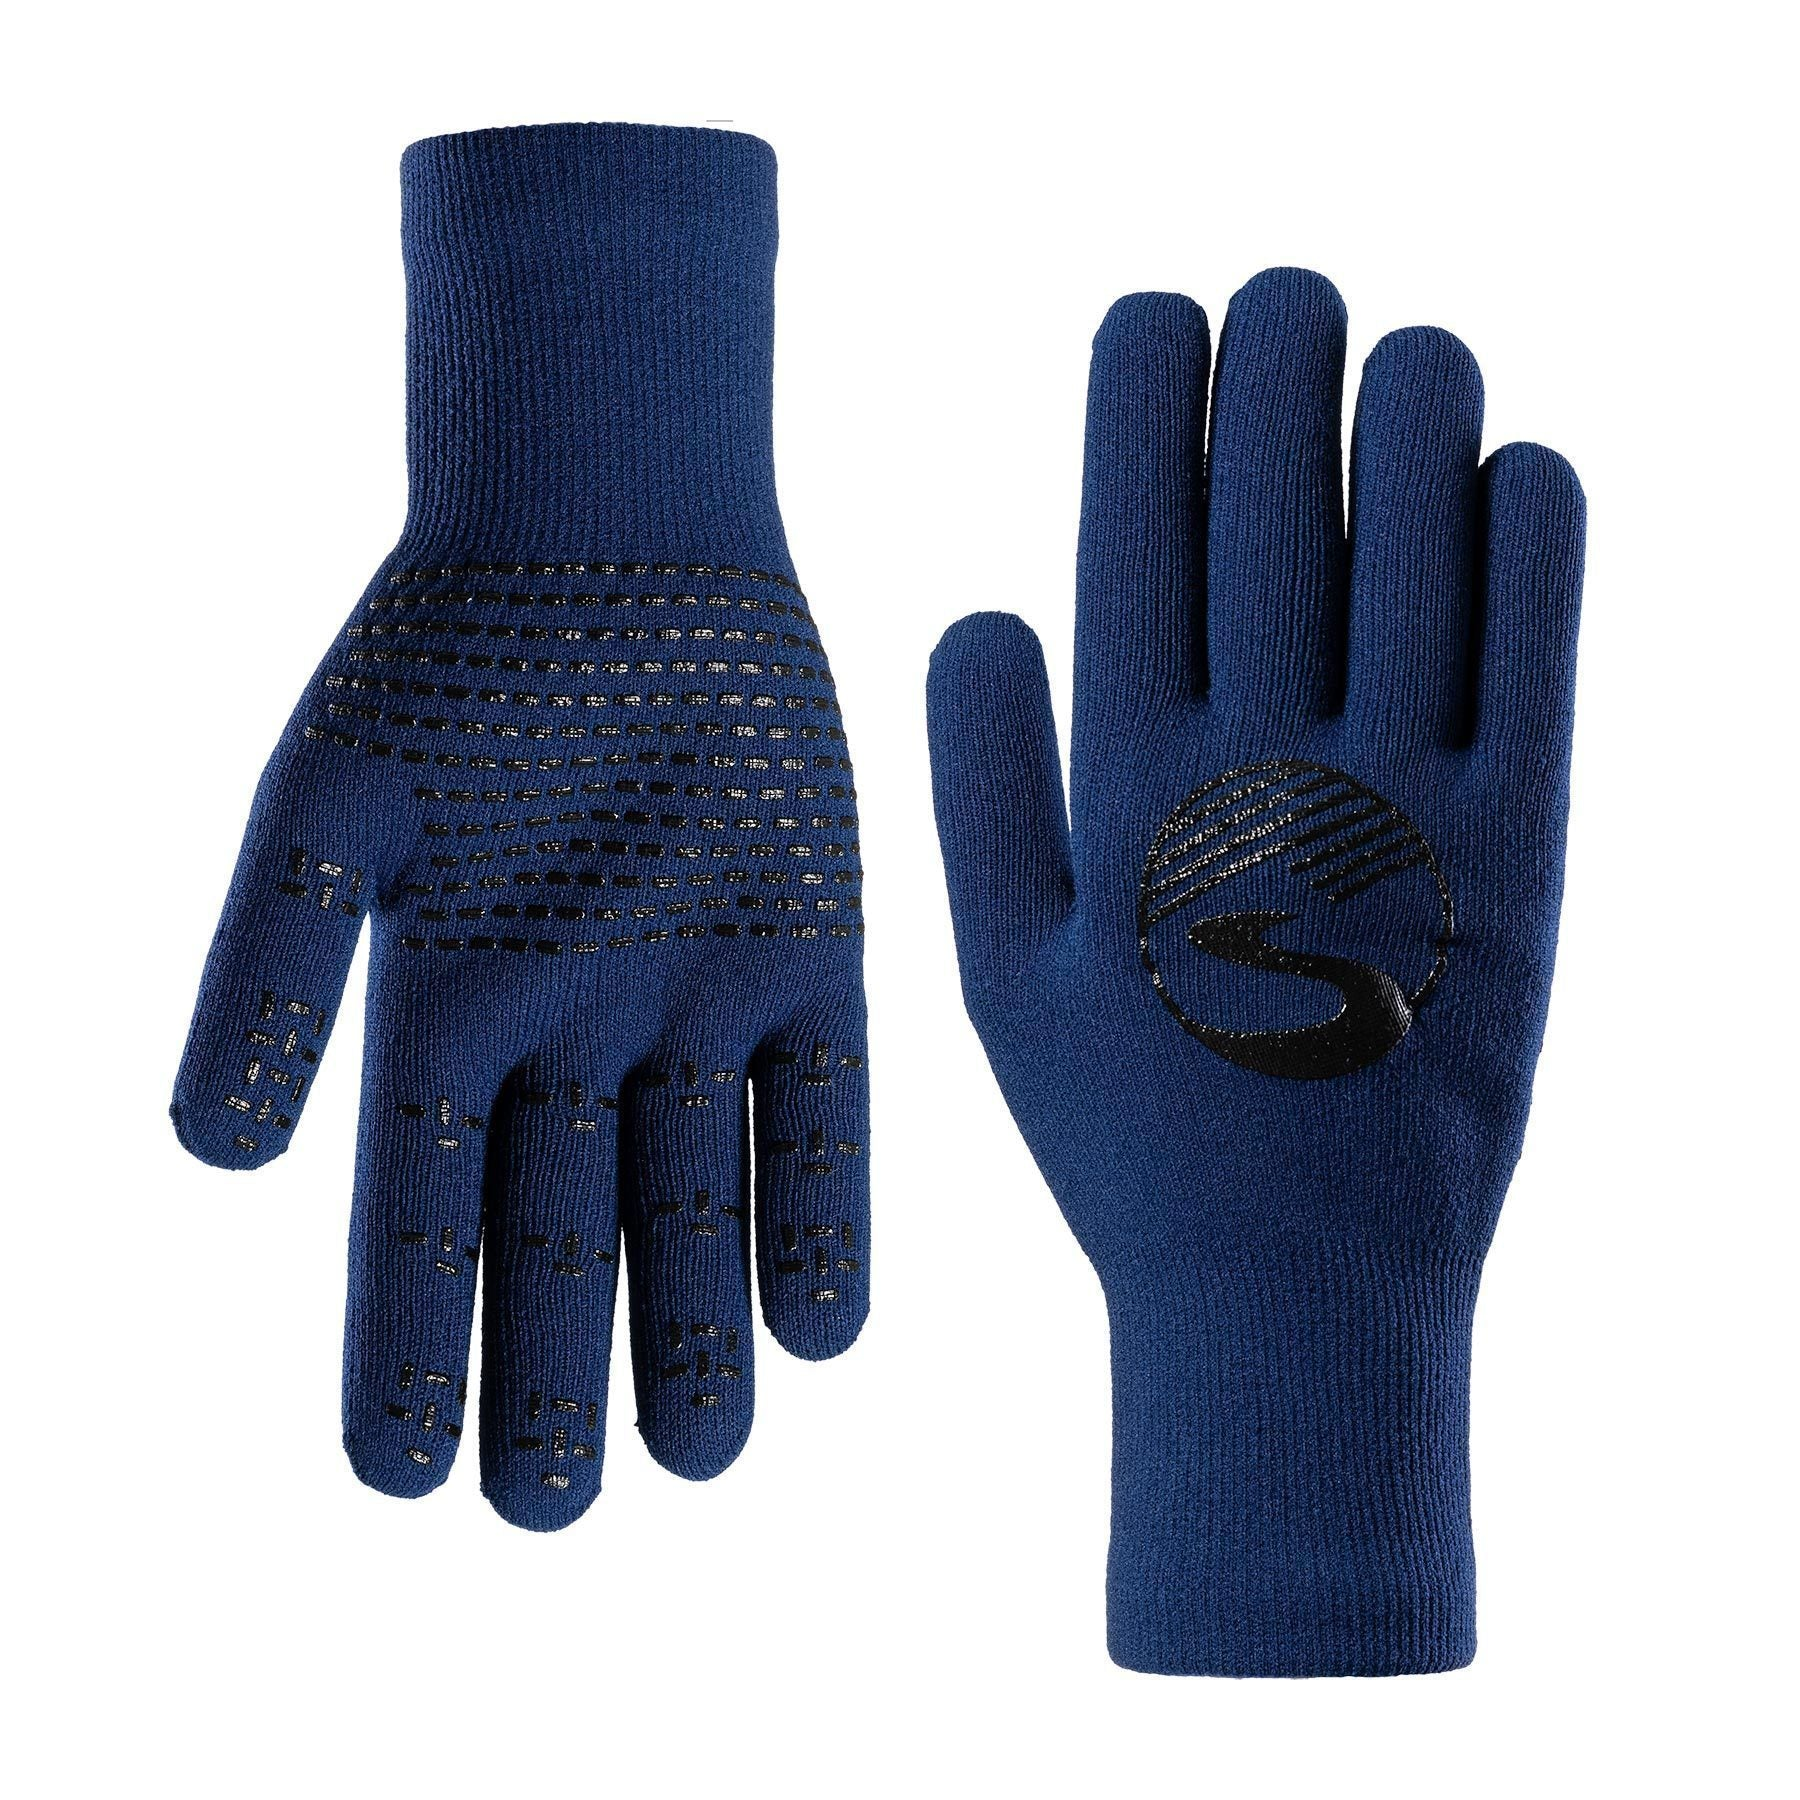 Crosspoint Knit Waterproof Gloves